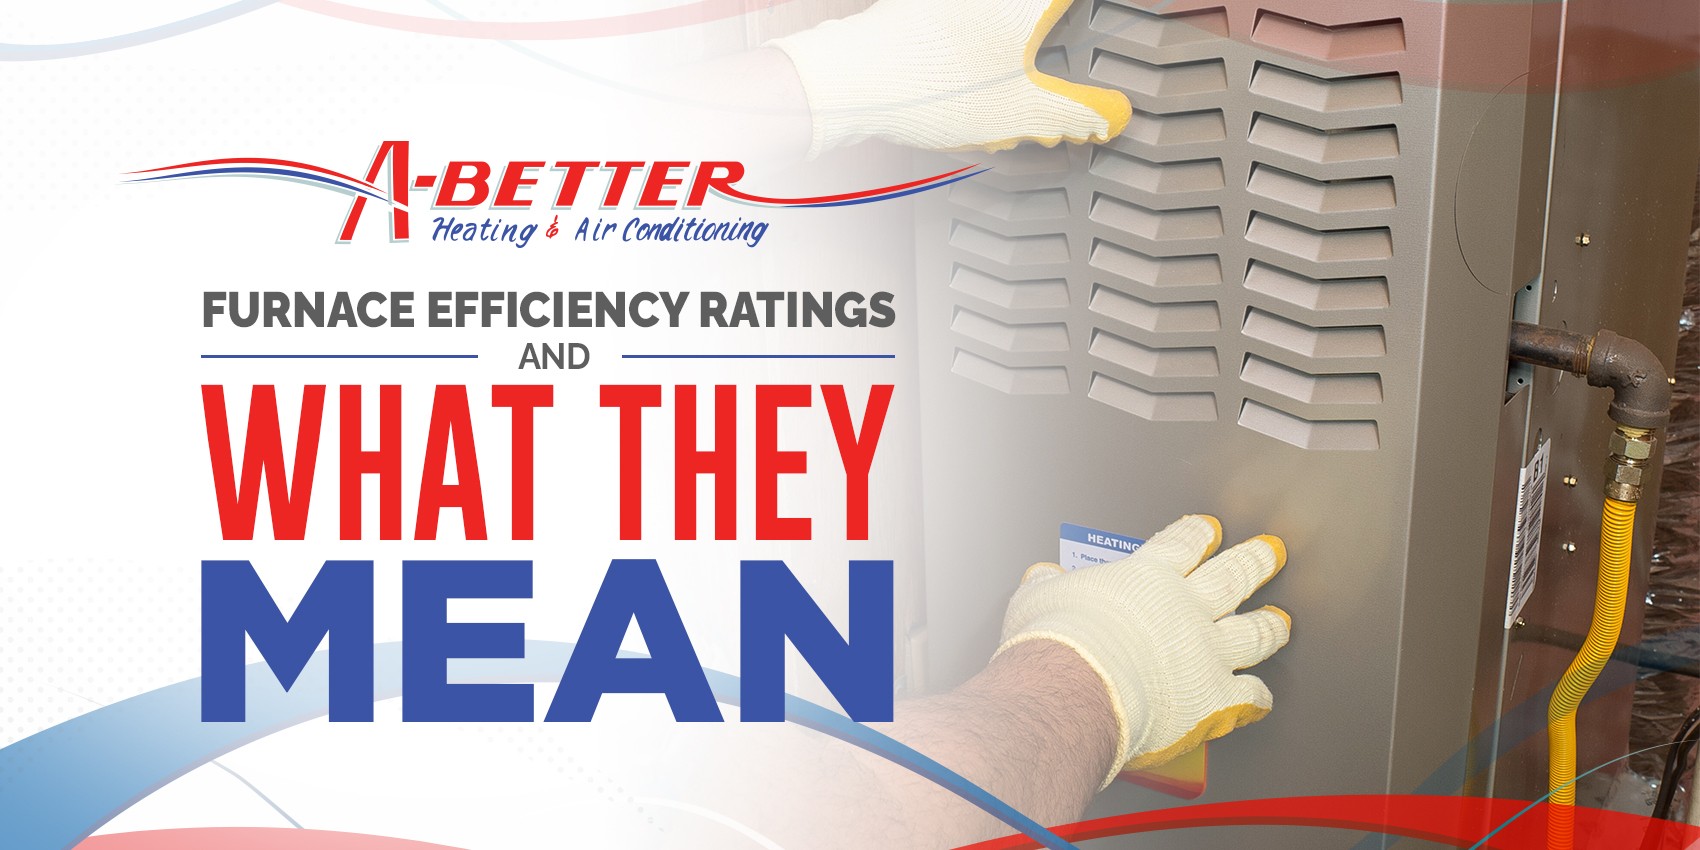 Furnace Efficiency Rating & What They Mean